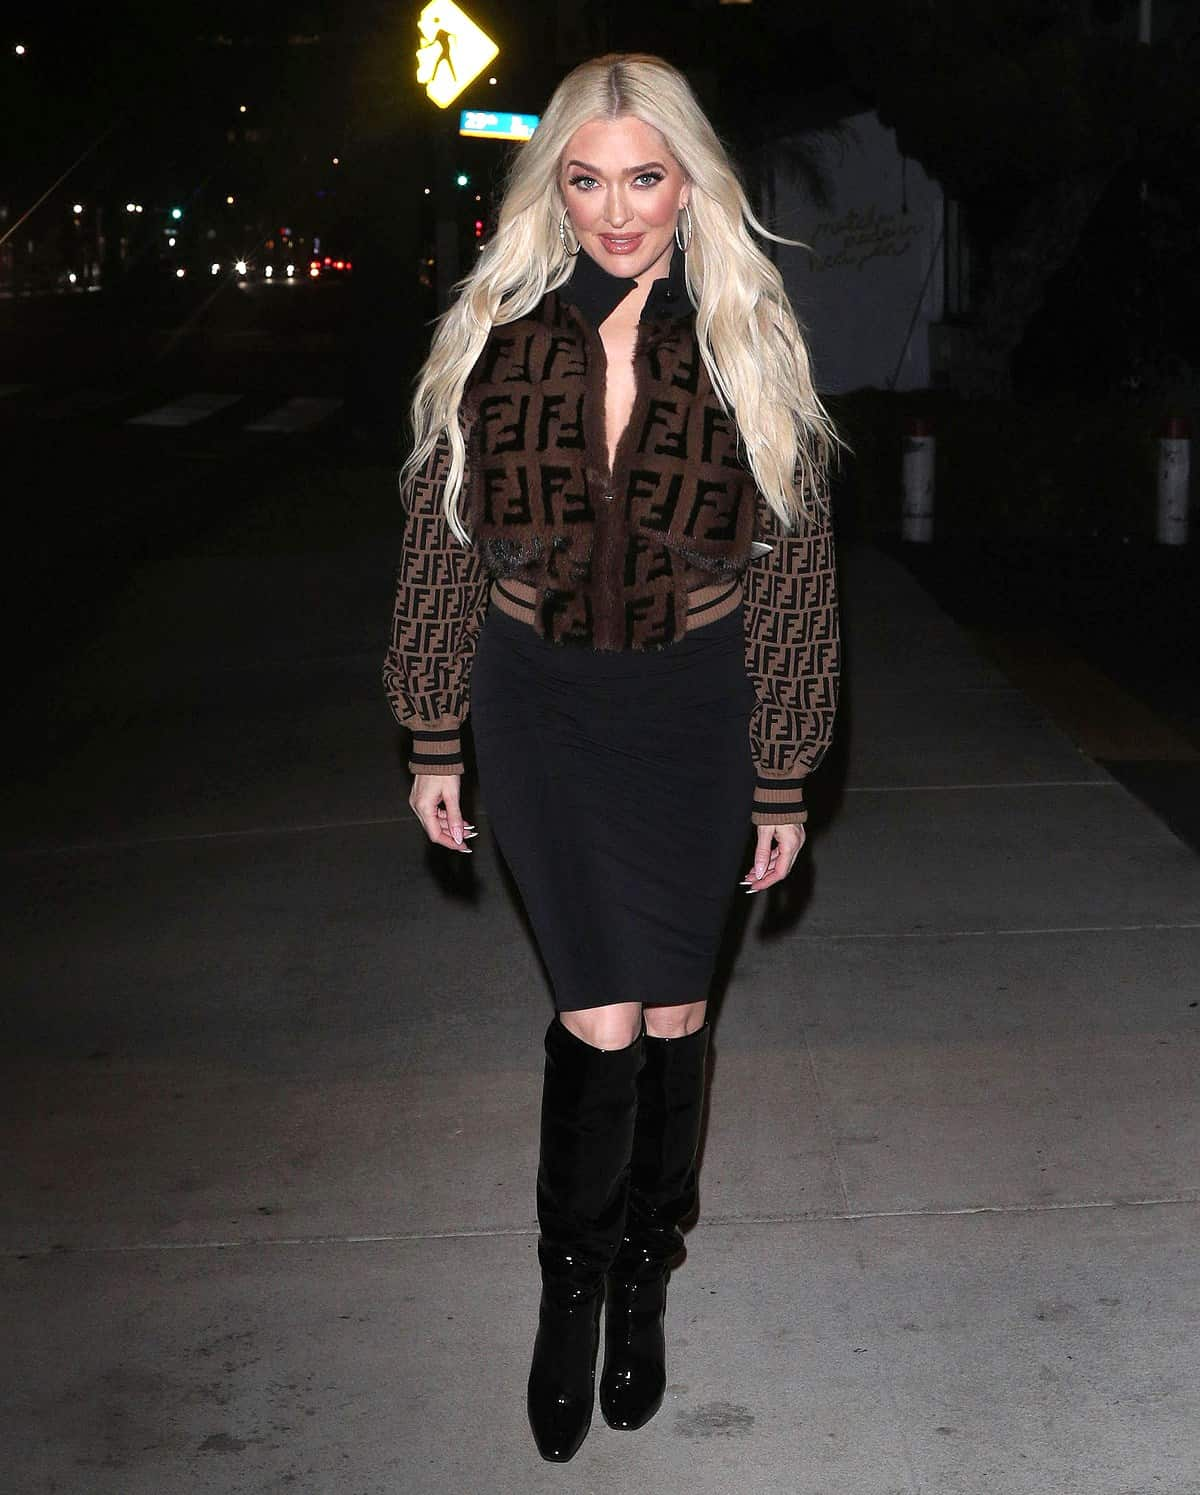 Erika Jayne Steps Out For Dinner in First Public Appearance Since Divorce